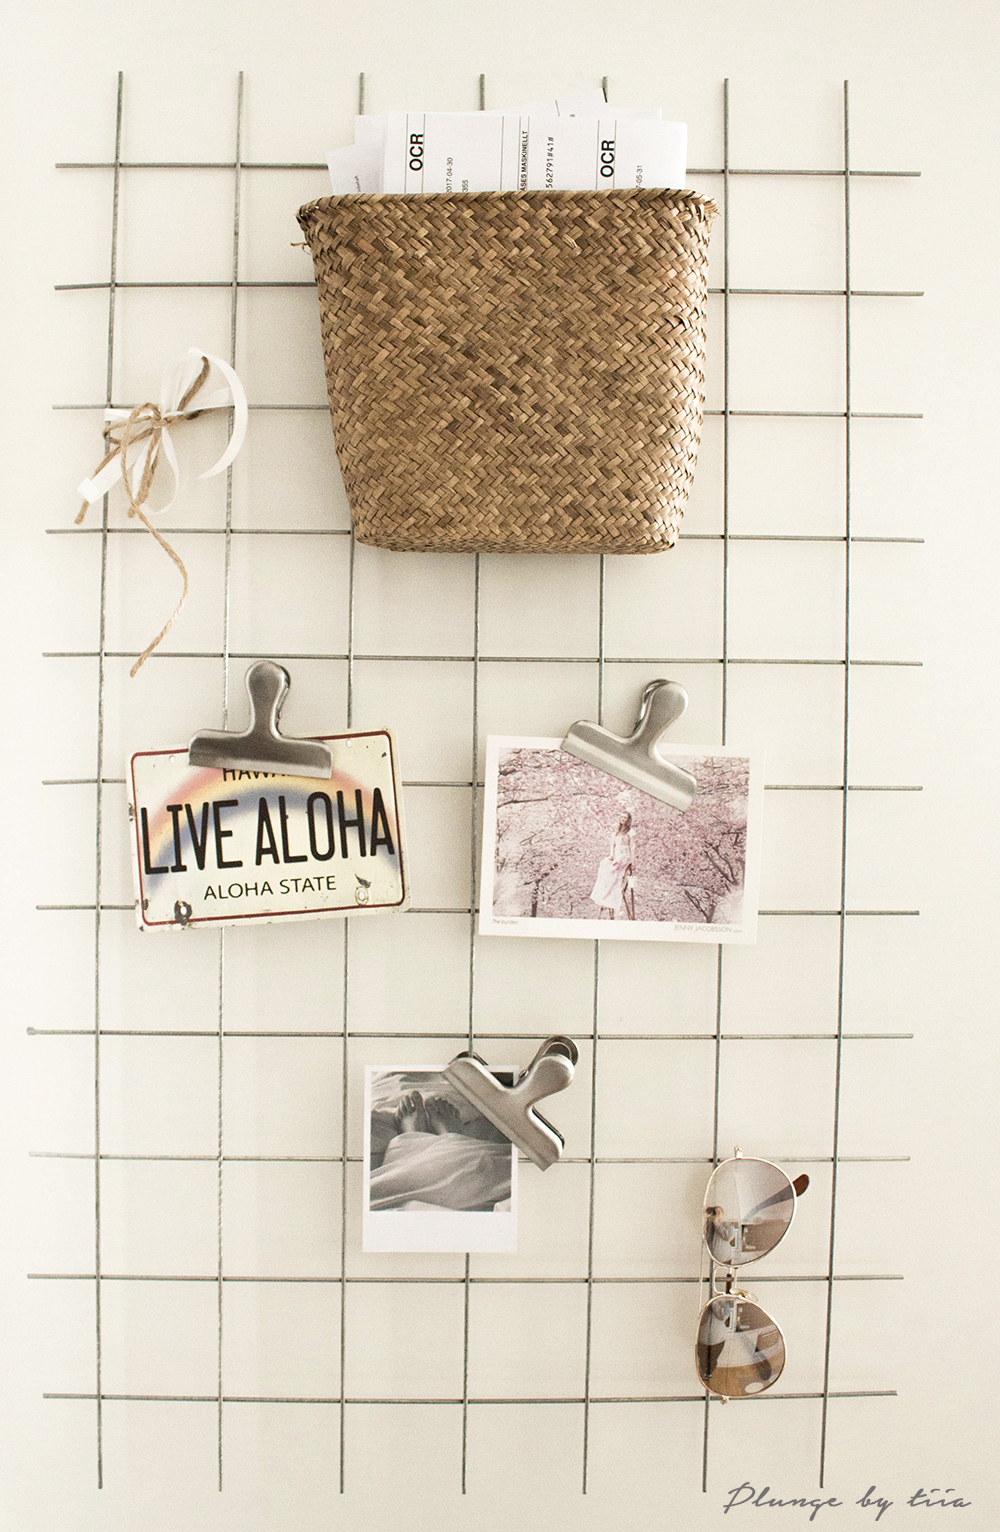 DIY Memory board - plunge by Tiia - Tiia Willman